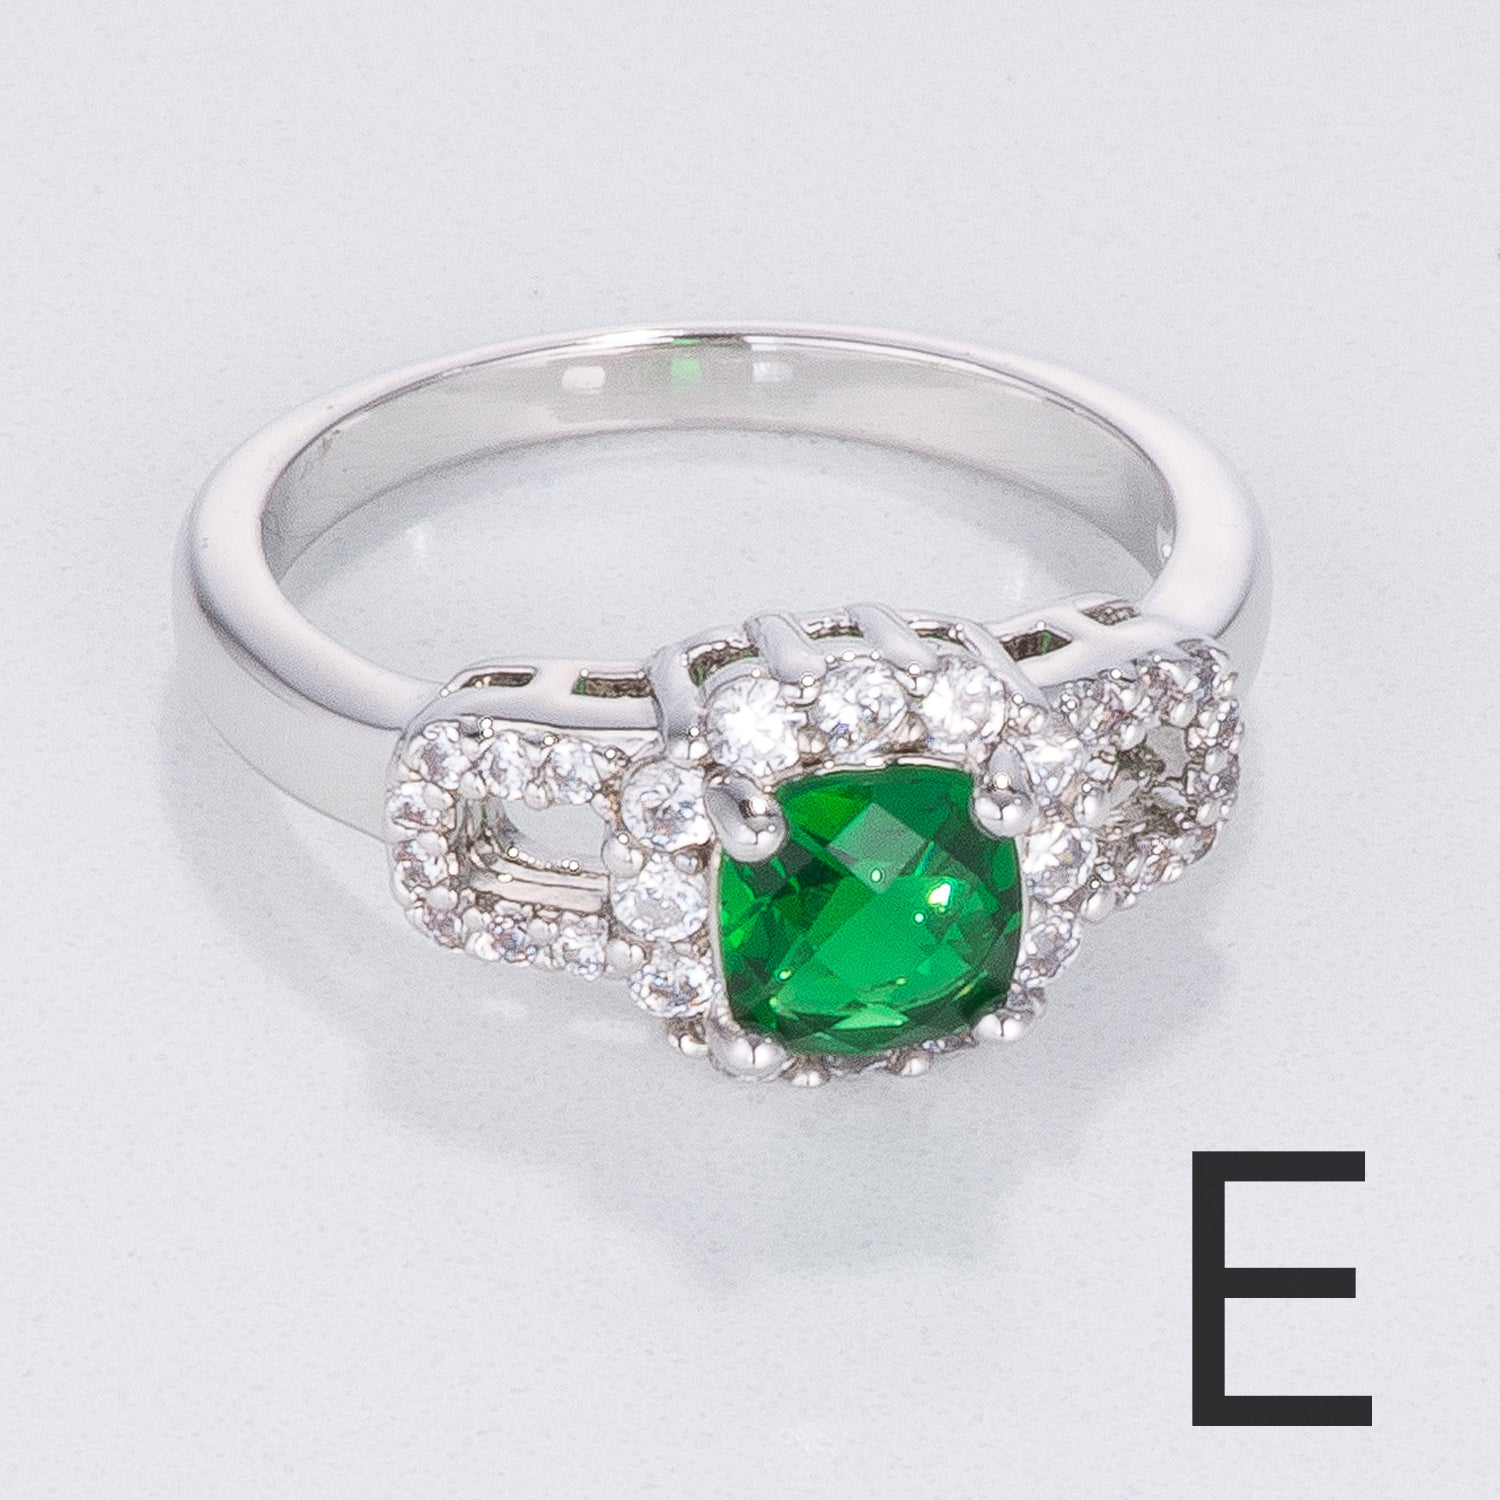 zoom designers gei xembk judy large geib green rings product ring gold basket at in emerald